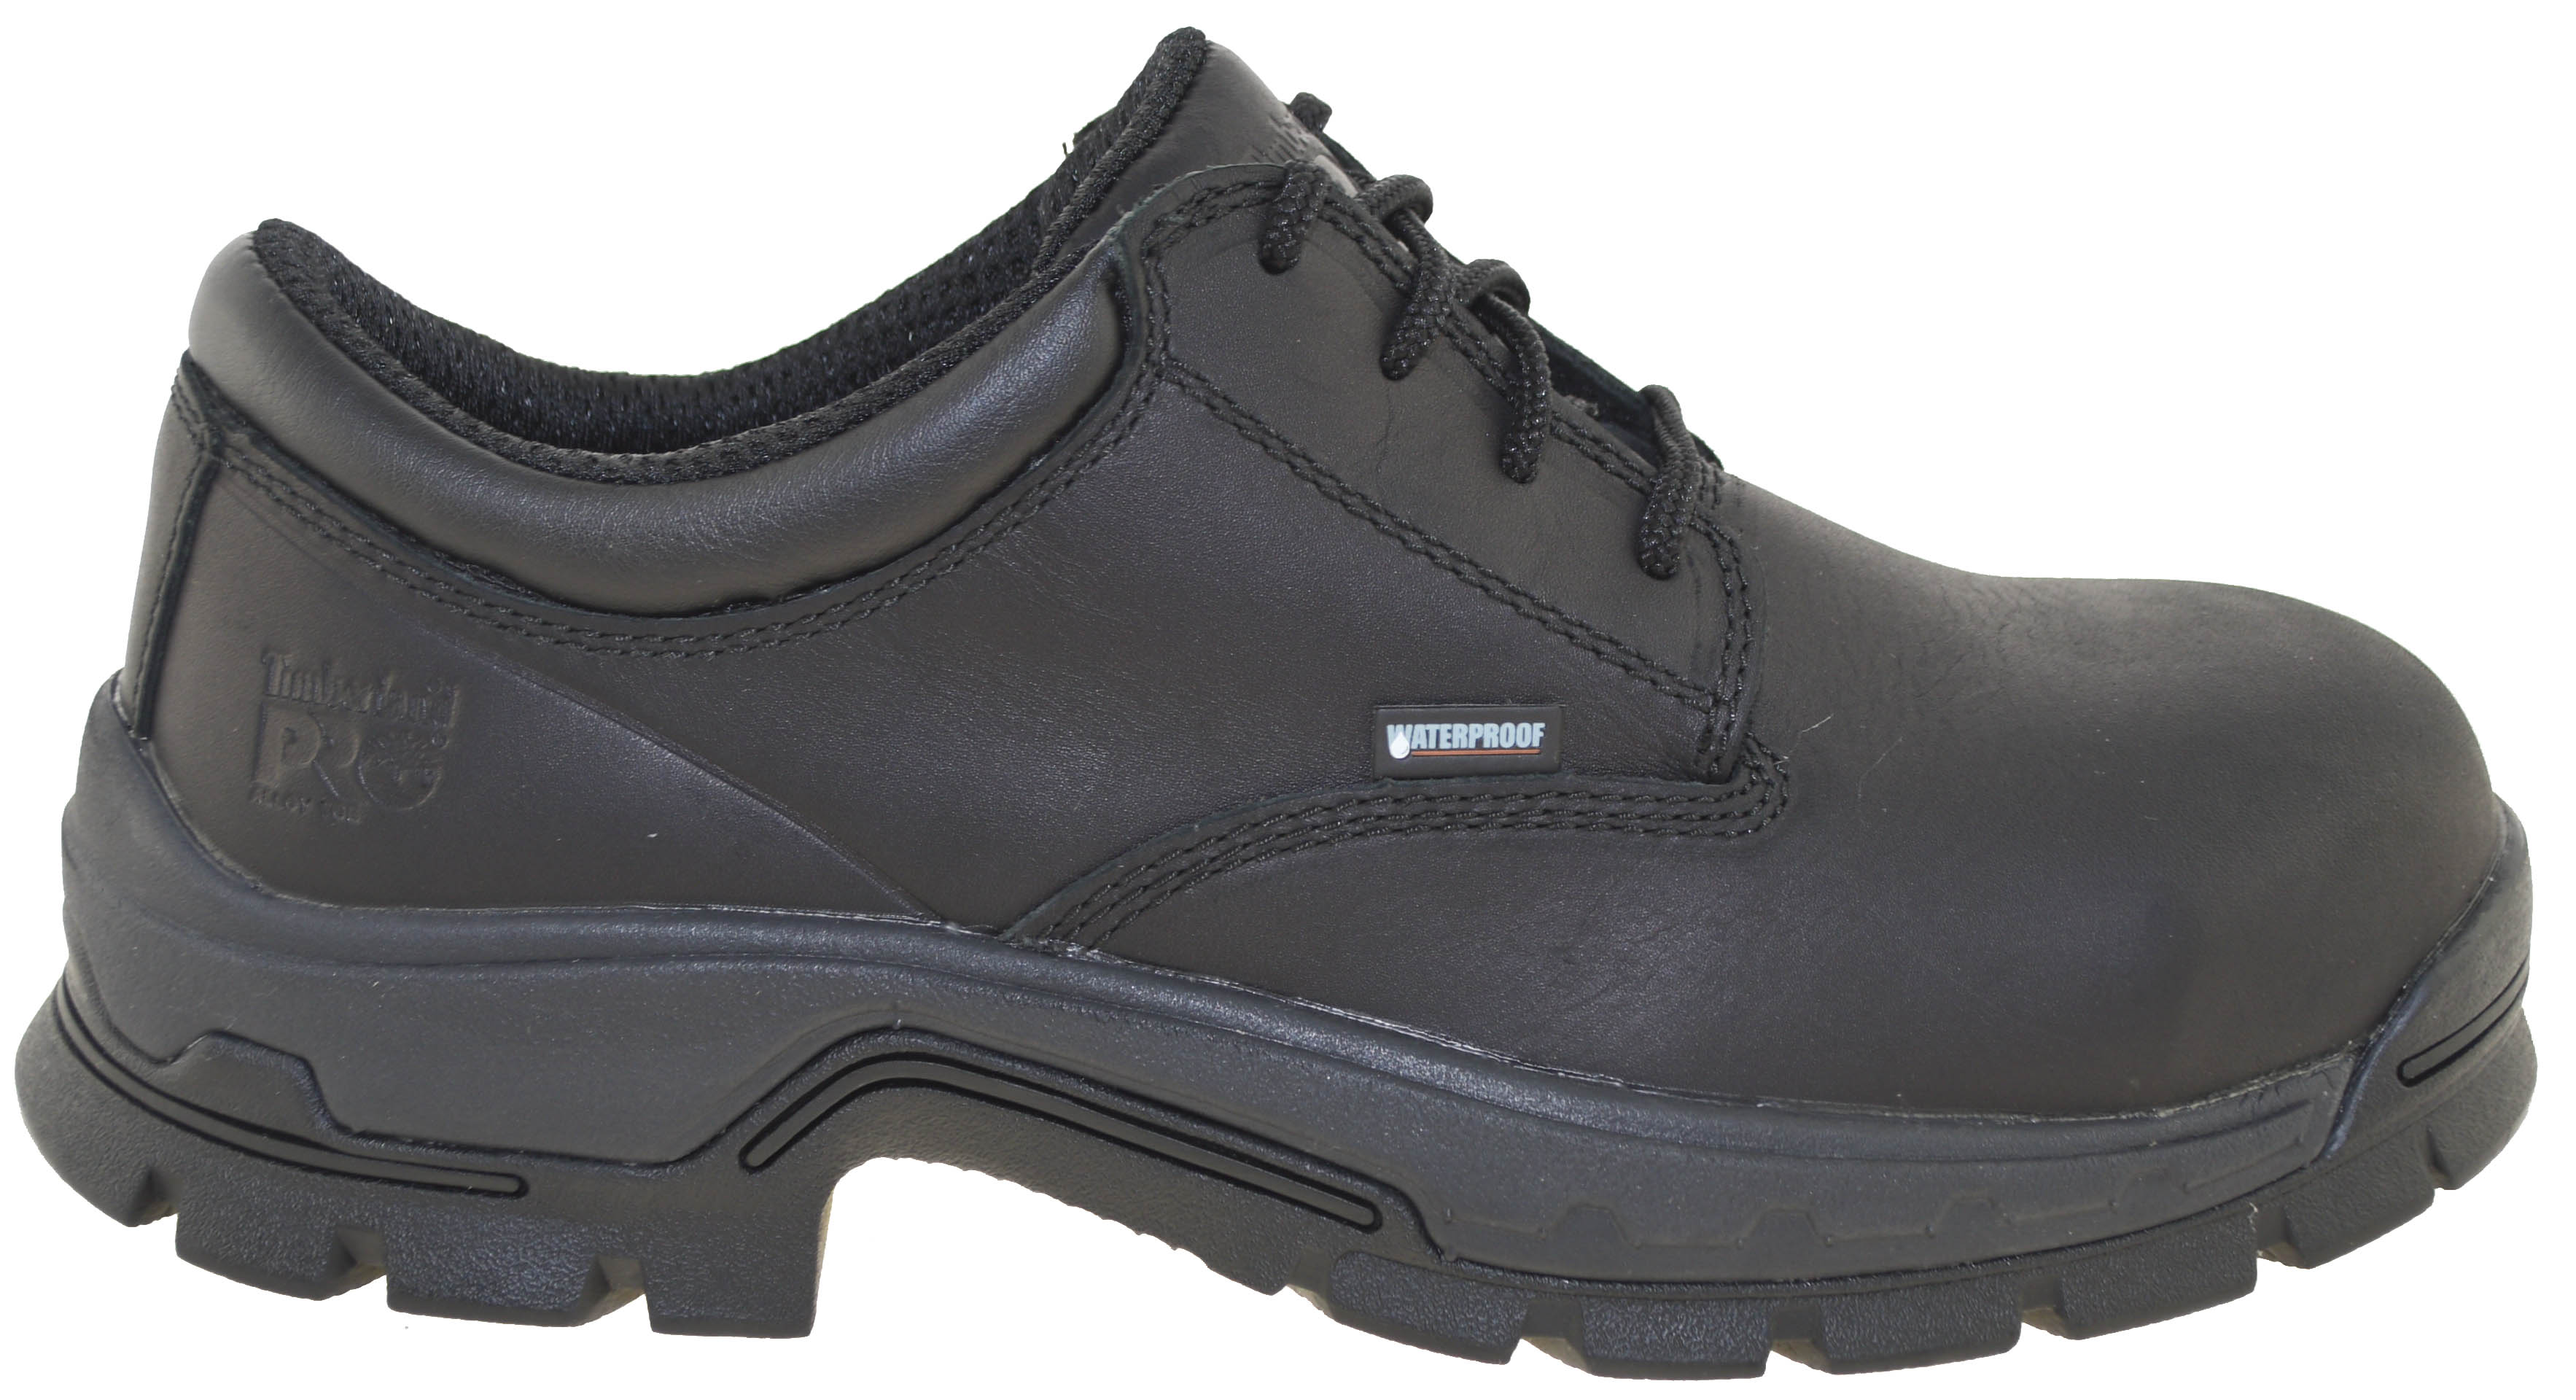 75b001b39a0 Details about Timberland Pro Men's Stockdale Alloy Safety Toe Waterproof  Oxford Black Style A1